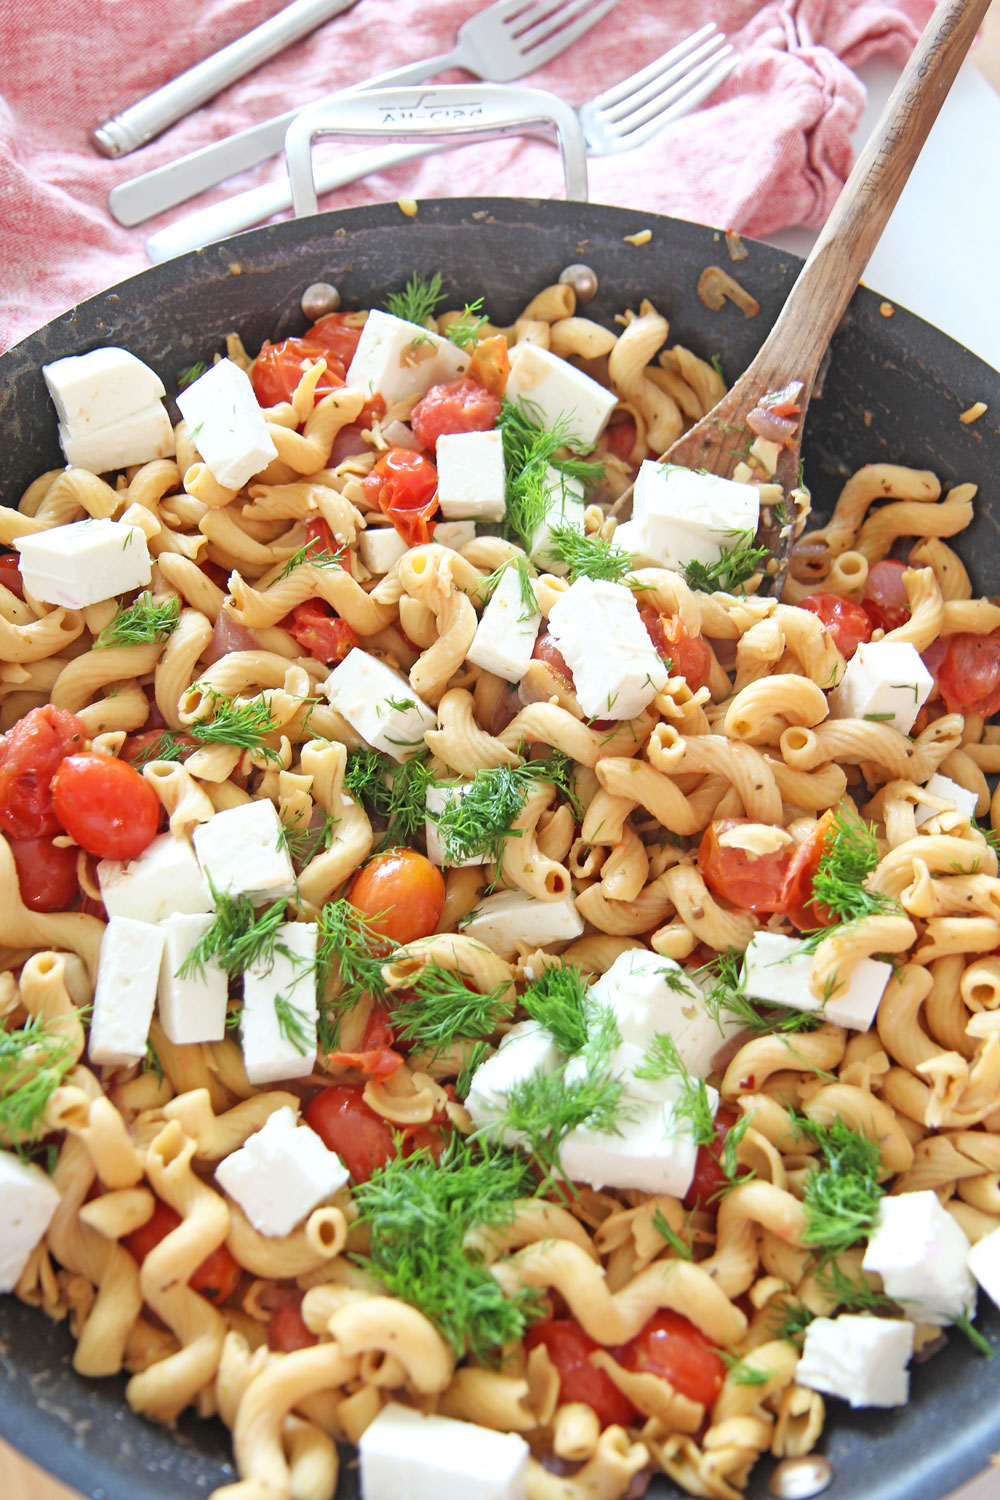 Bursting With Gratitude Tomato Feta Pasta Recipe. Grab sweet tomatoes, oregano, red pepper flakes, olive oil, pasta, and feta. This is a fast weeknight meal that takes only 15 minutes. Happy Cooking! www.ChopHappy.com #pastarecipe #GreekPasta